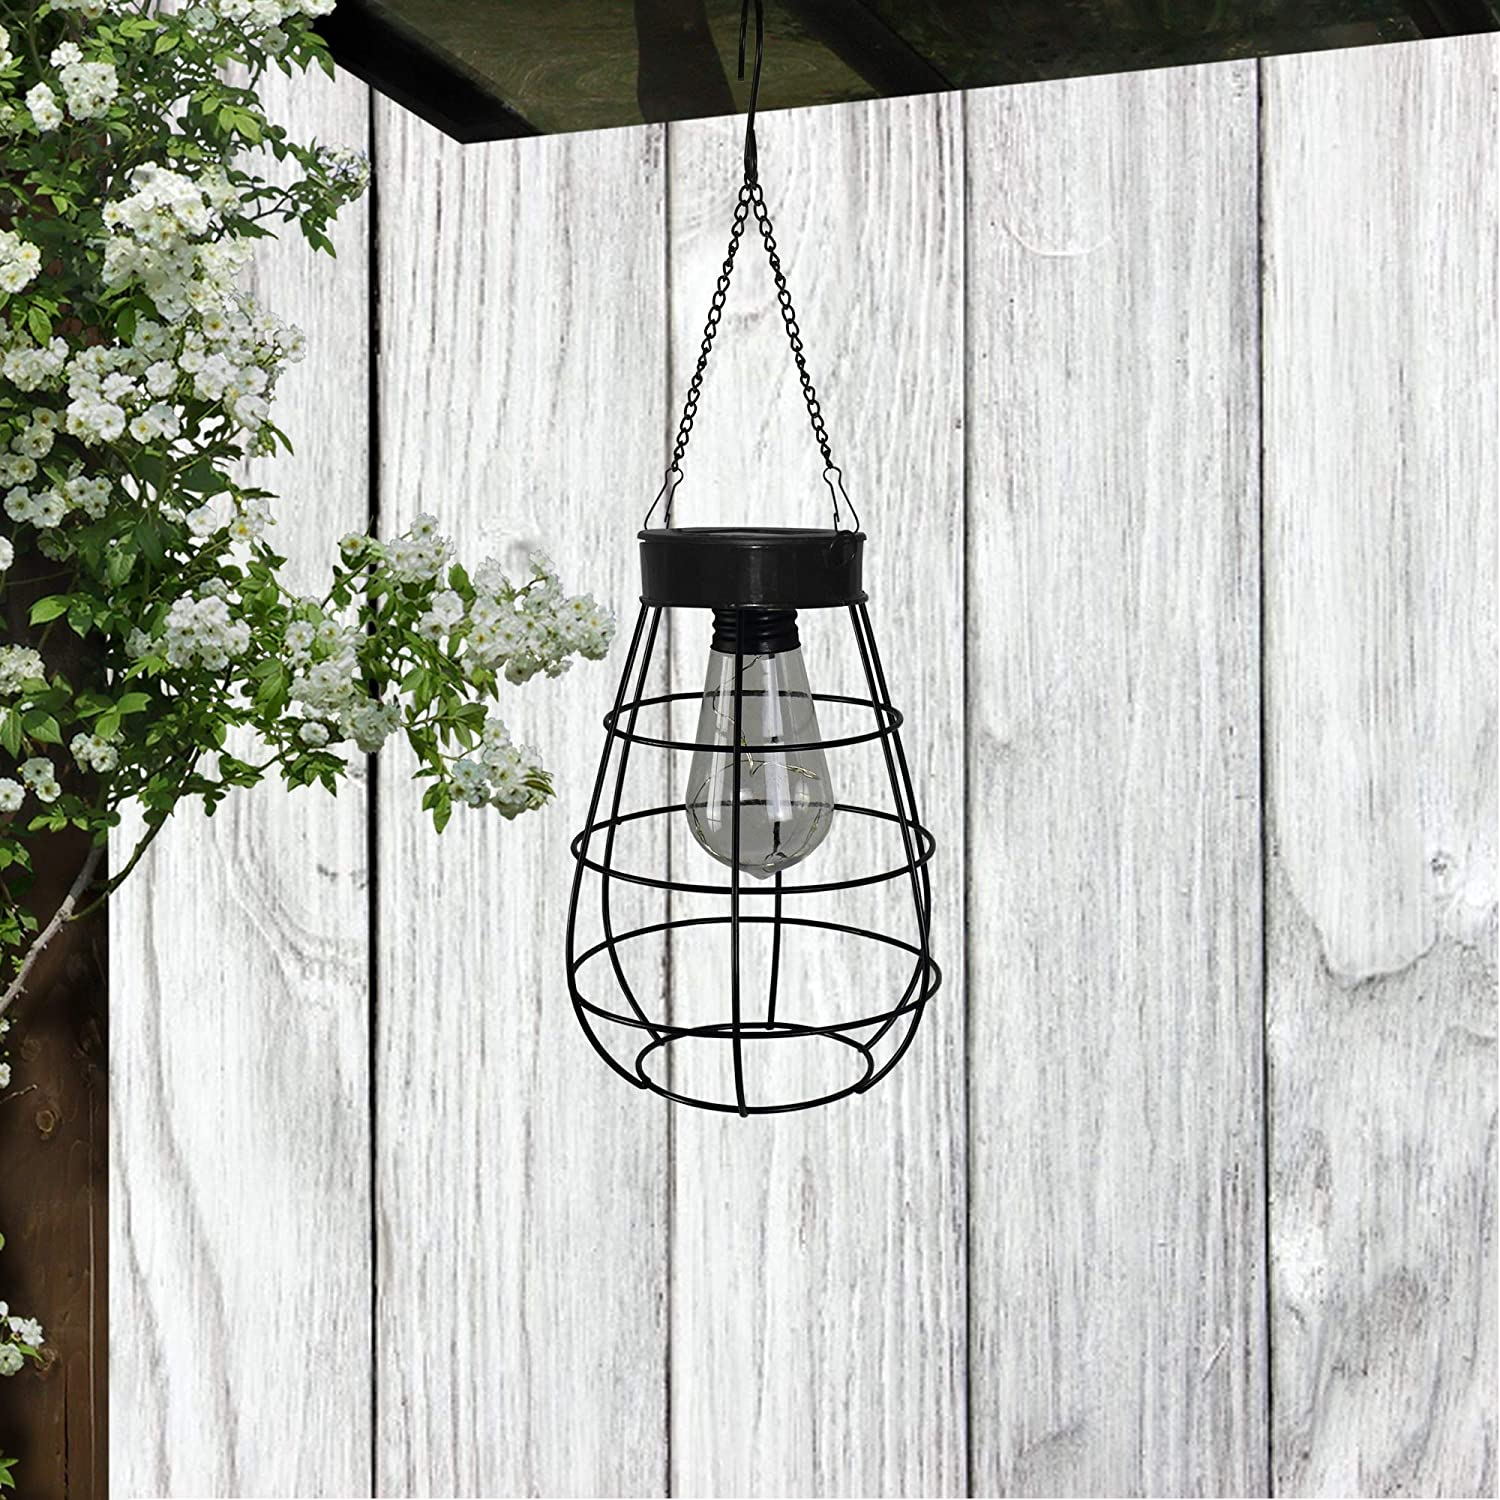 Solar Cage Hanging Lantern, Wireless for Outdoor use, Illuminate for Patio, Porch (Bulb)